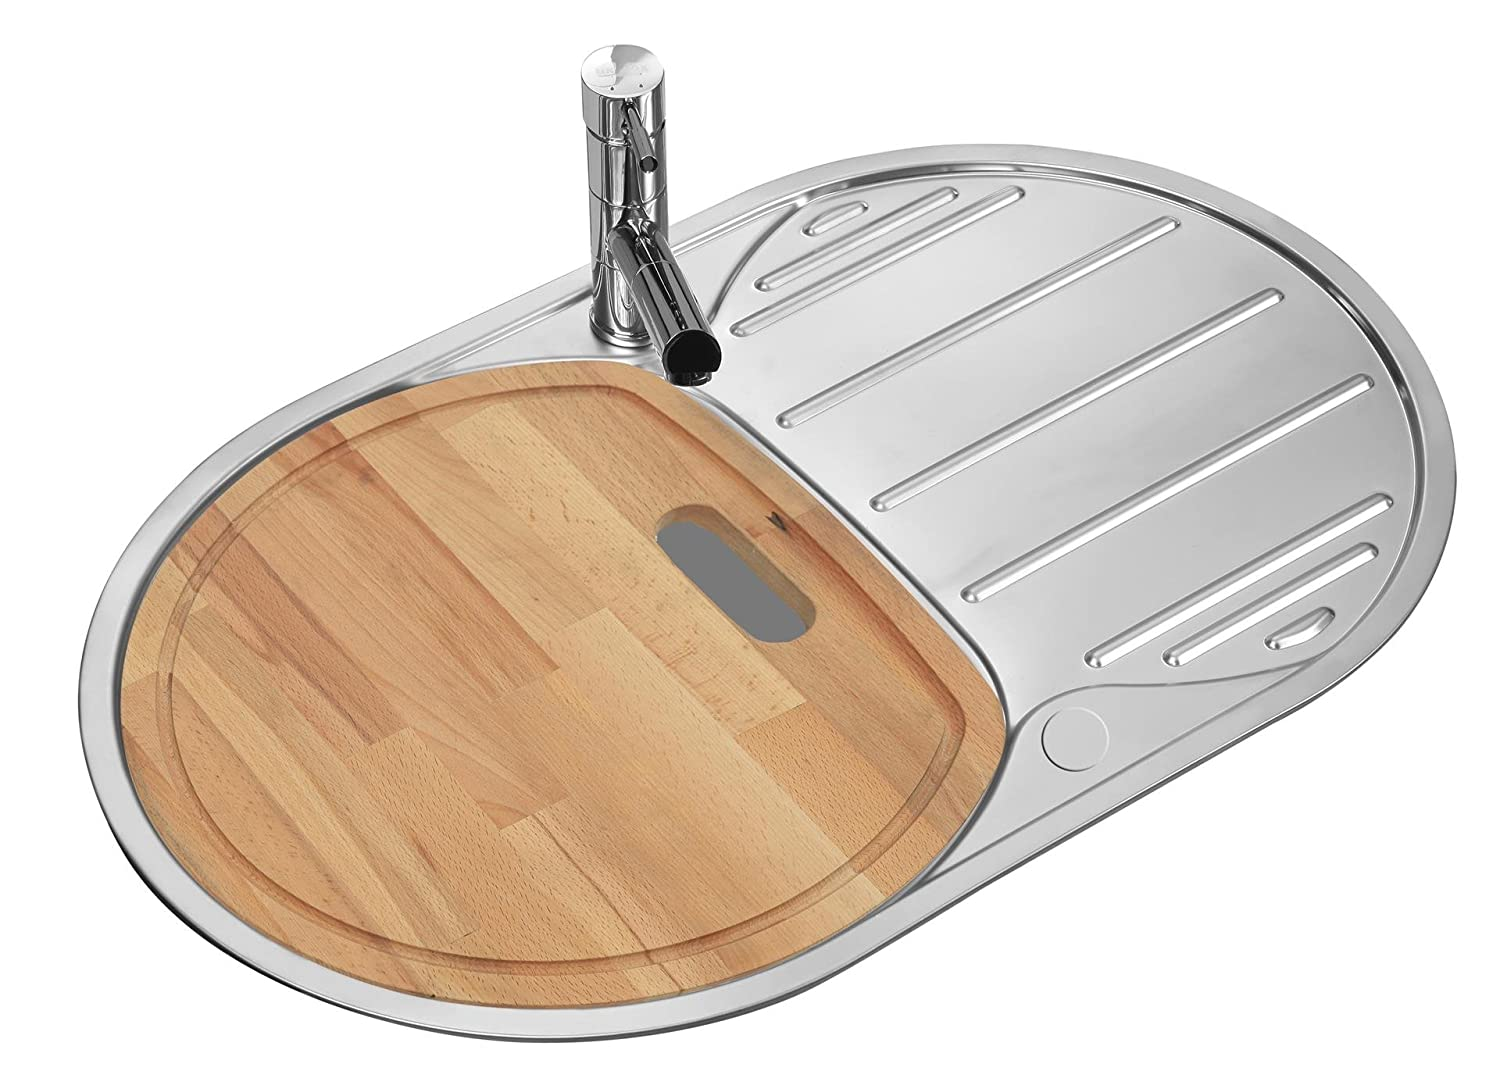 Polished Inset Round Stainless Steel Kitchen Sink & Drainer with chopping board (LA002) Grand Taps